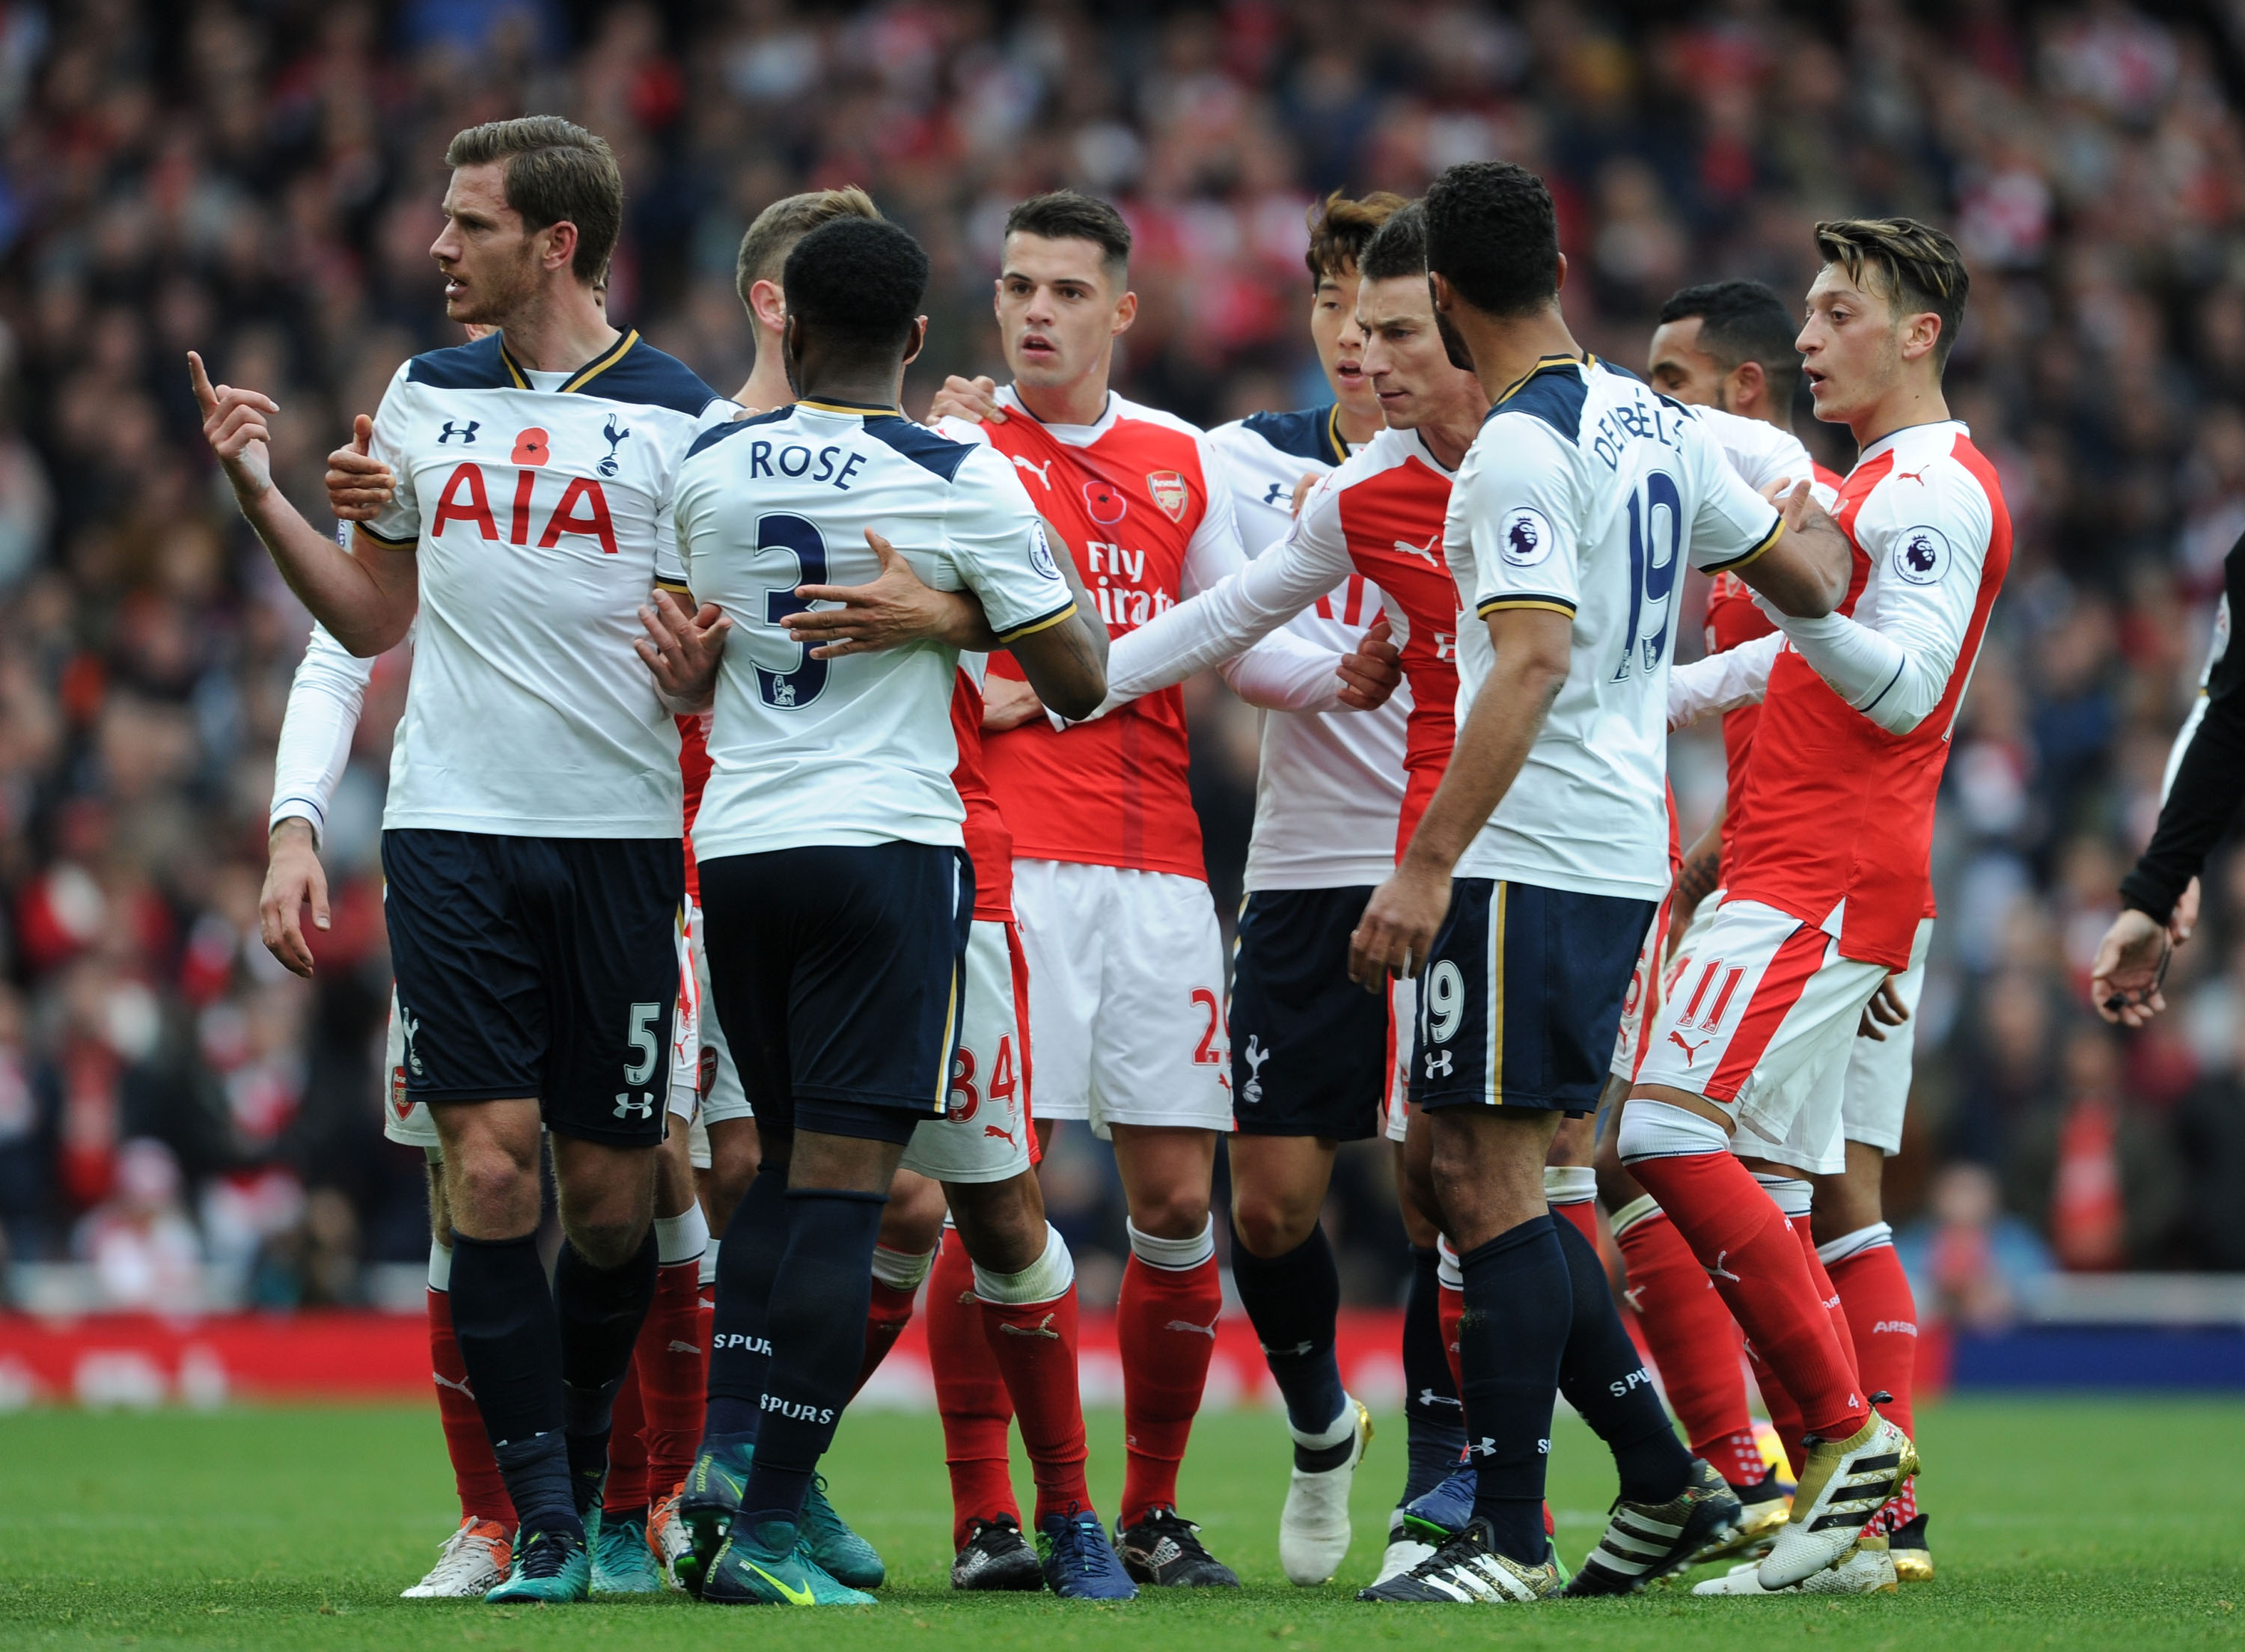 Arsenal's midfield is nowhere near as good as Tottenham's, says ex-Spurs star Jermaine Jenas